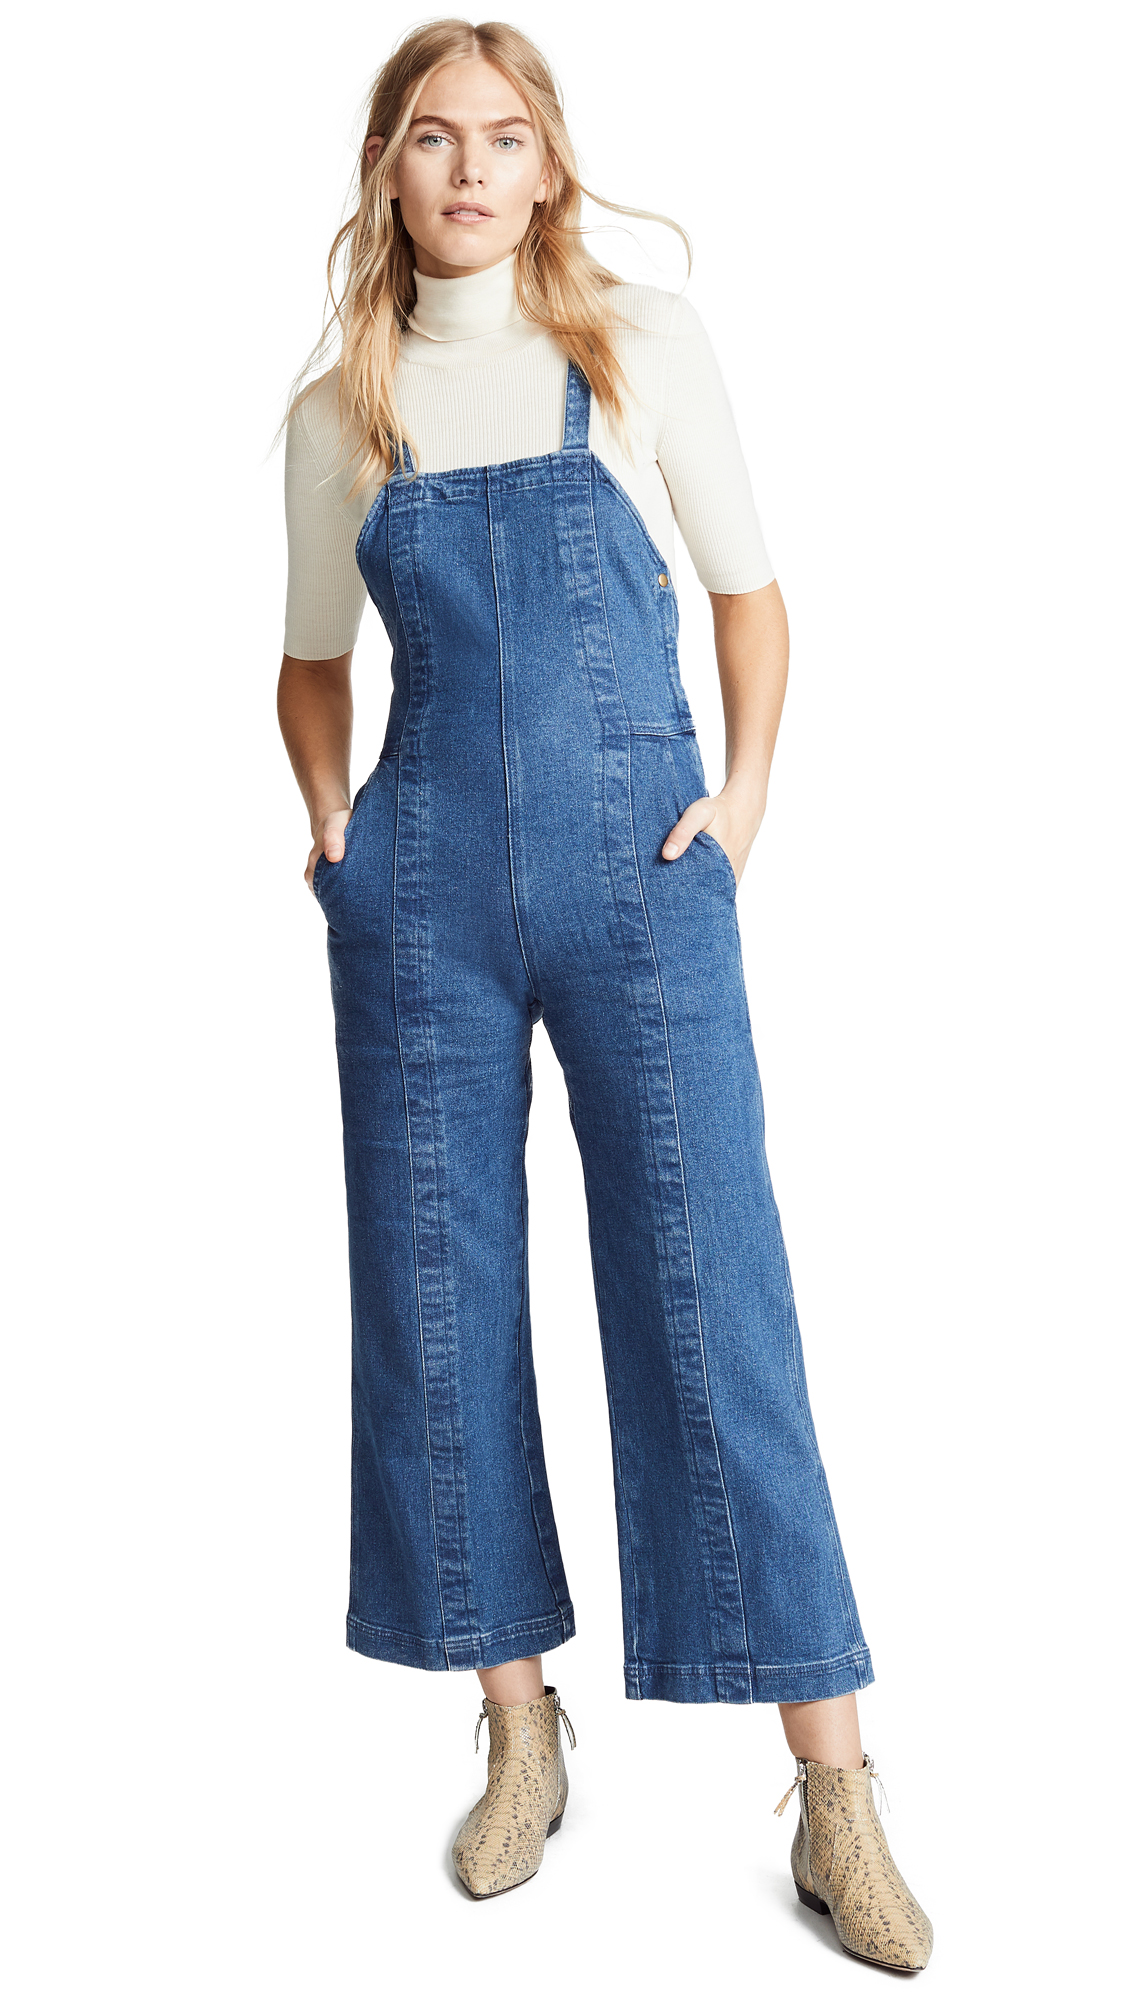 Apiece Apart Camen Denim Overalls In Stonewash